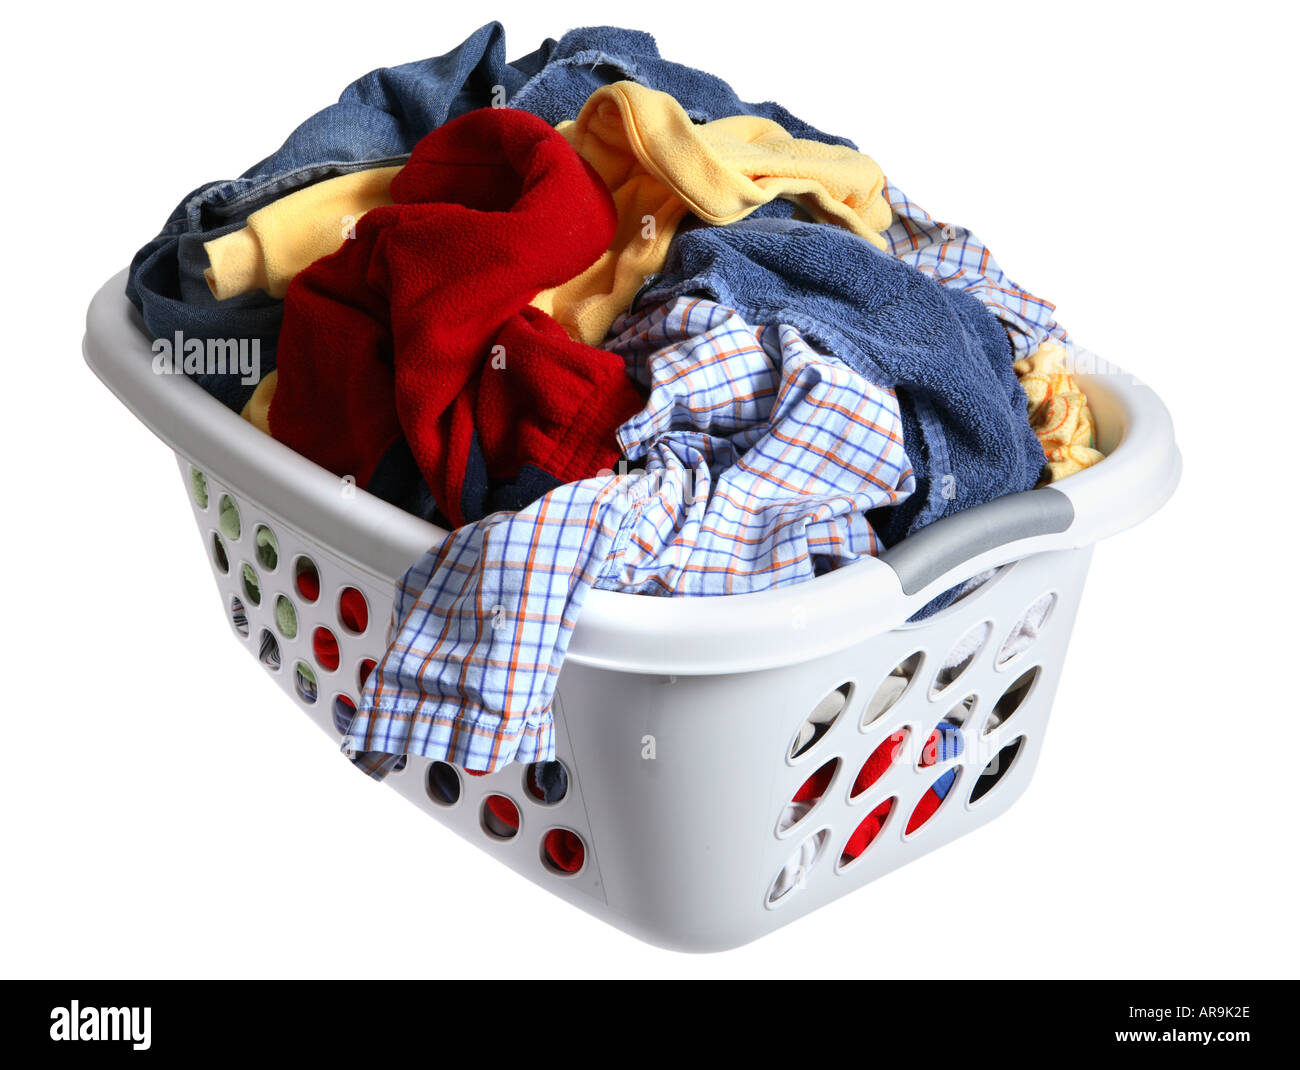 Clothes Baskets Laundry Basket Full Of Dirty Clothes Stock Photo 5218093